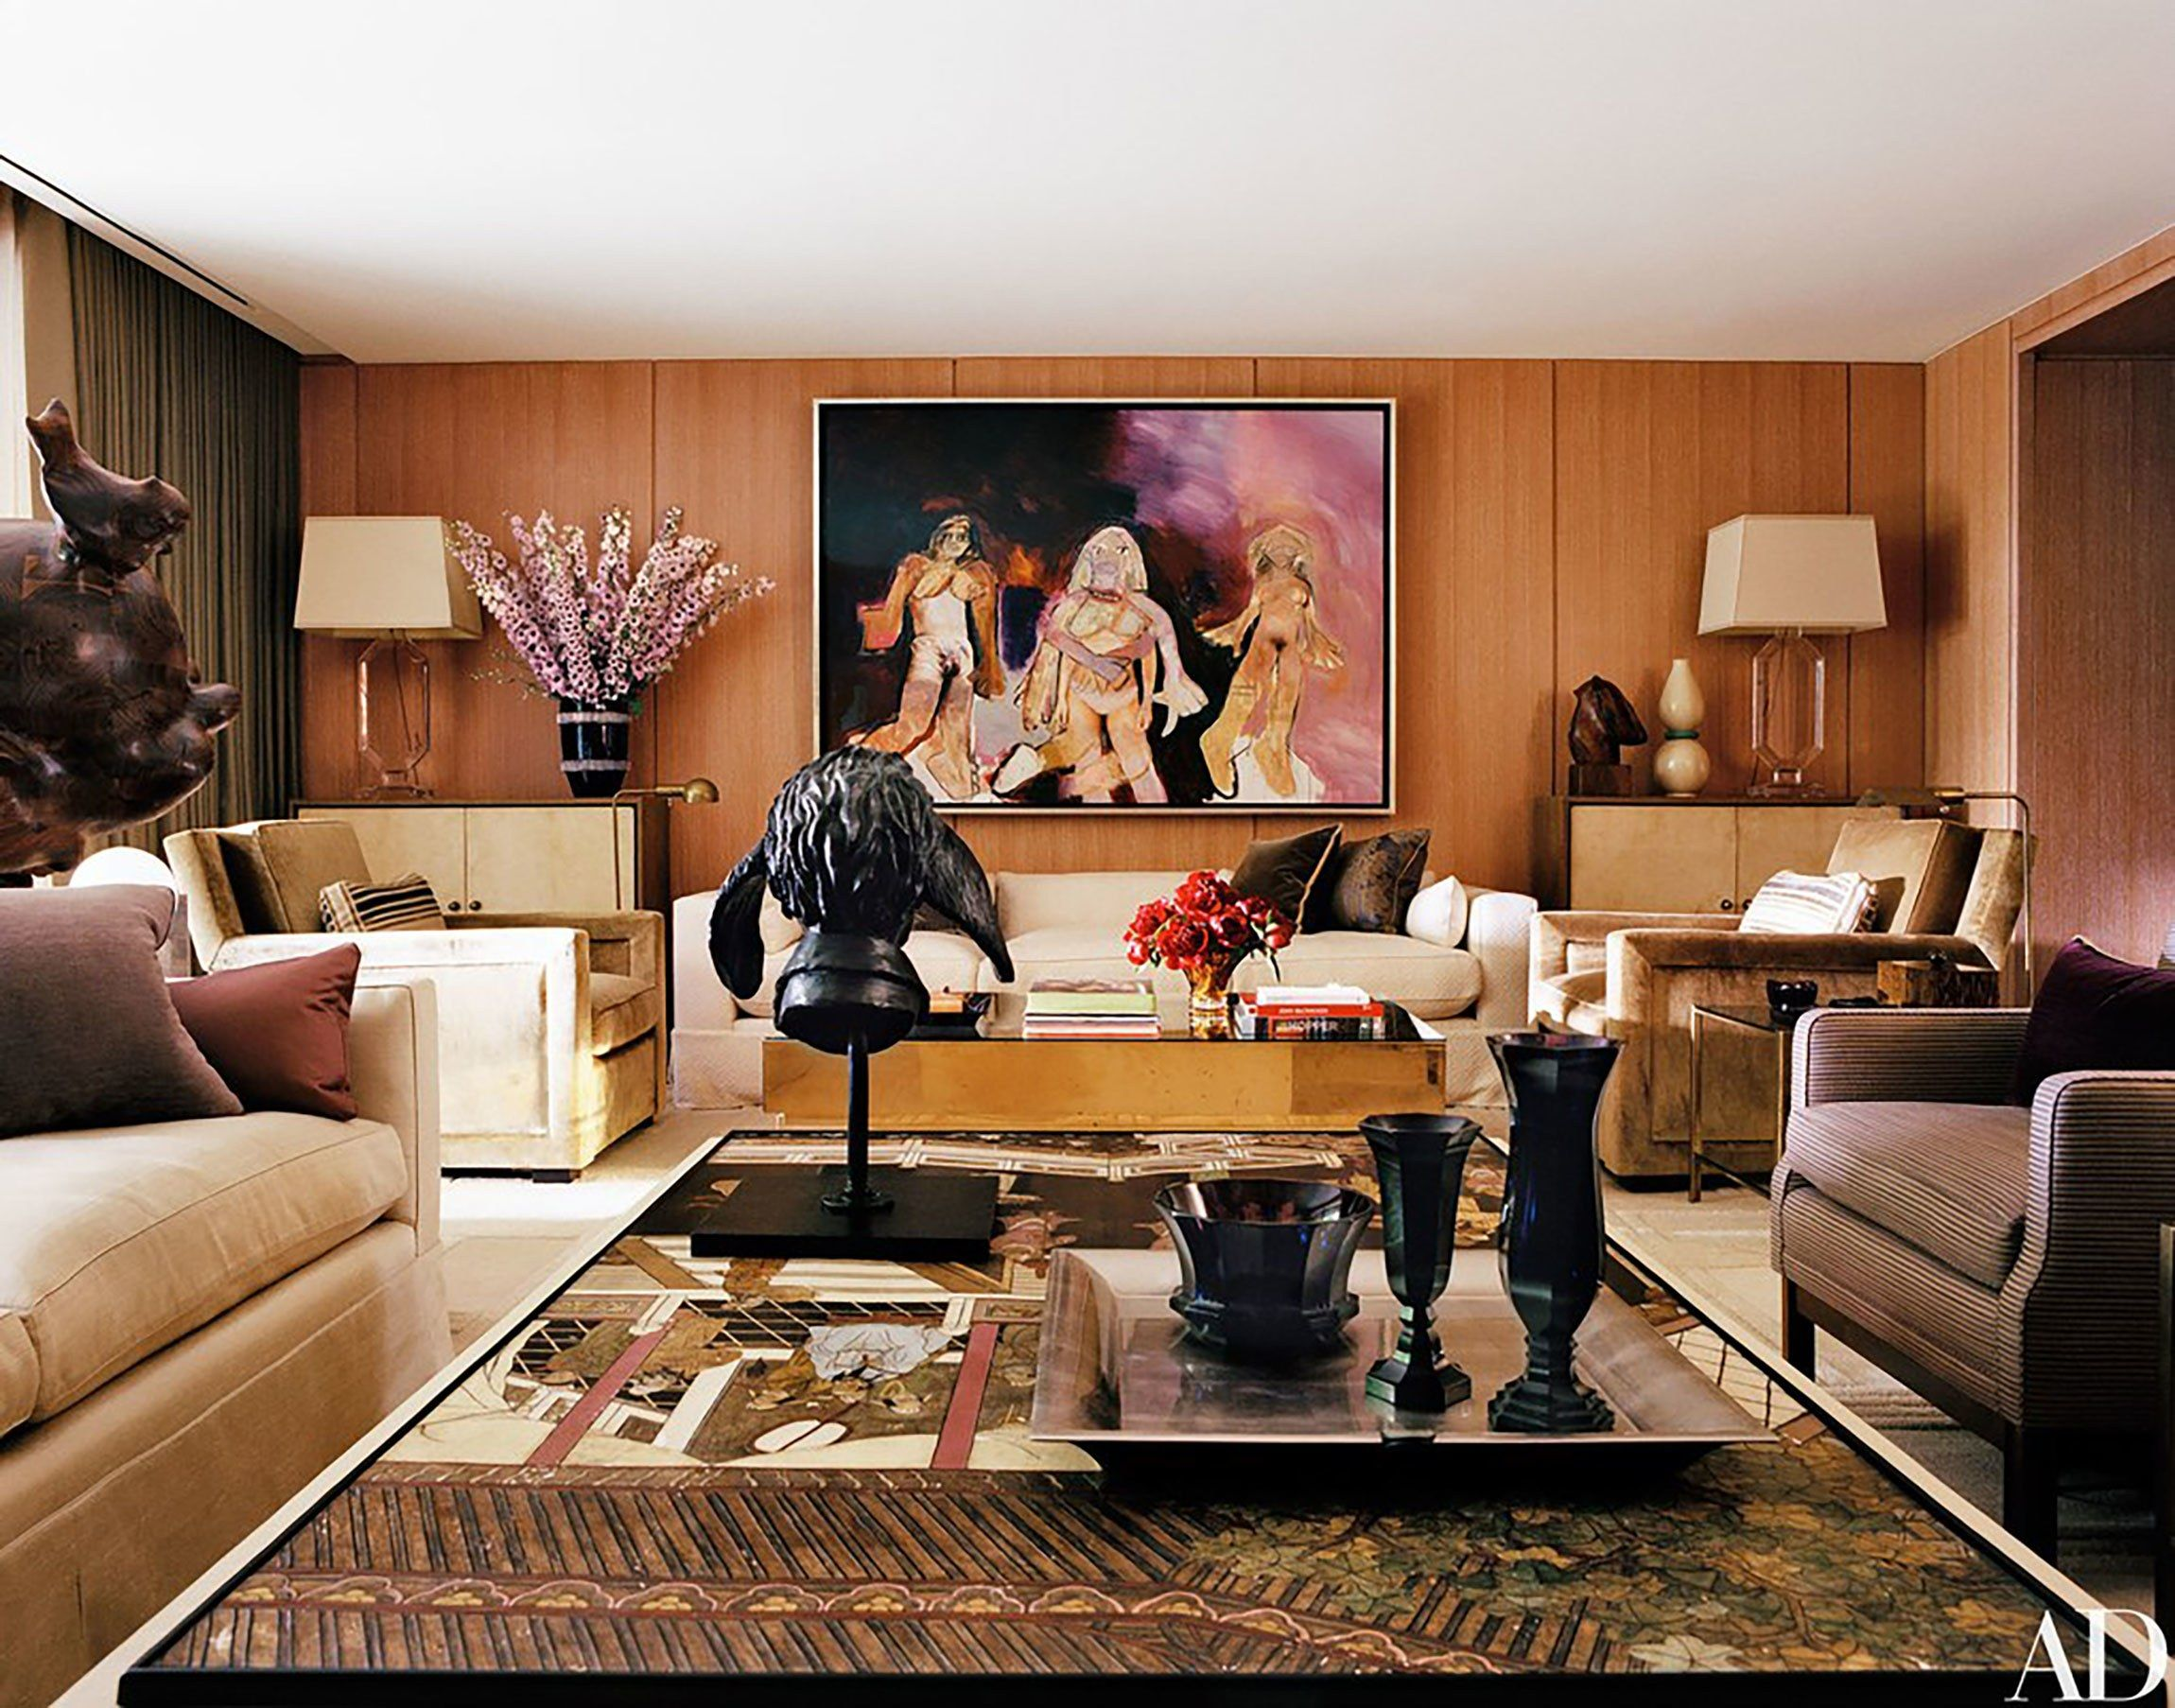 44 of the best living rooms of 2016 interiors new york - Architectural digest celebrity homes 2016 ...